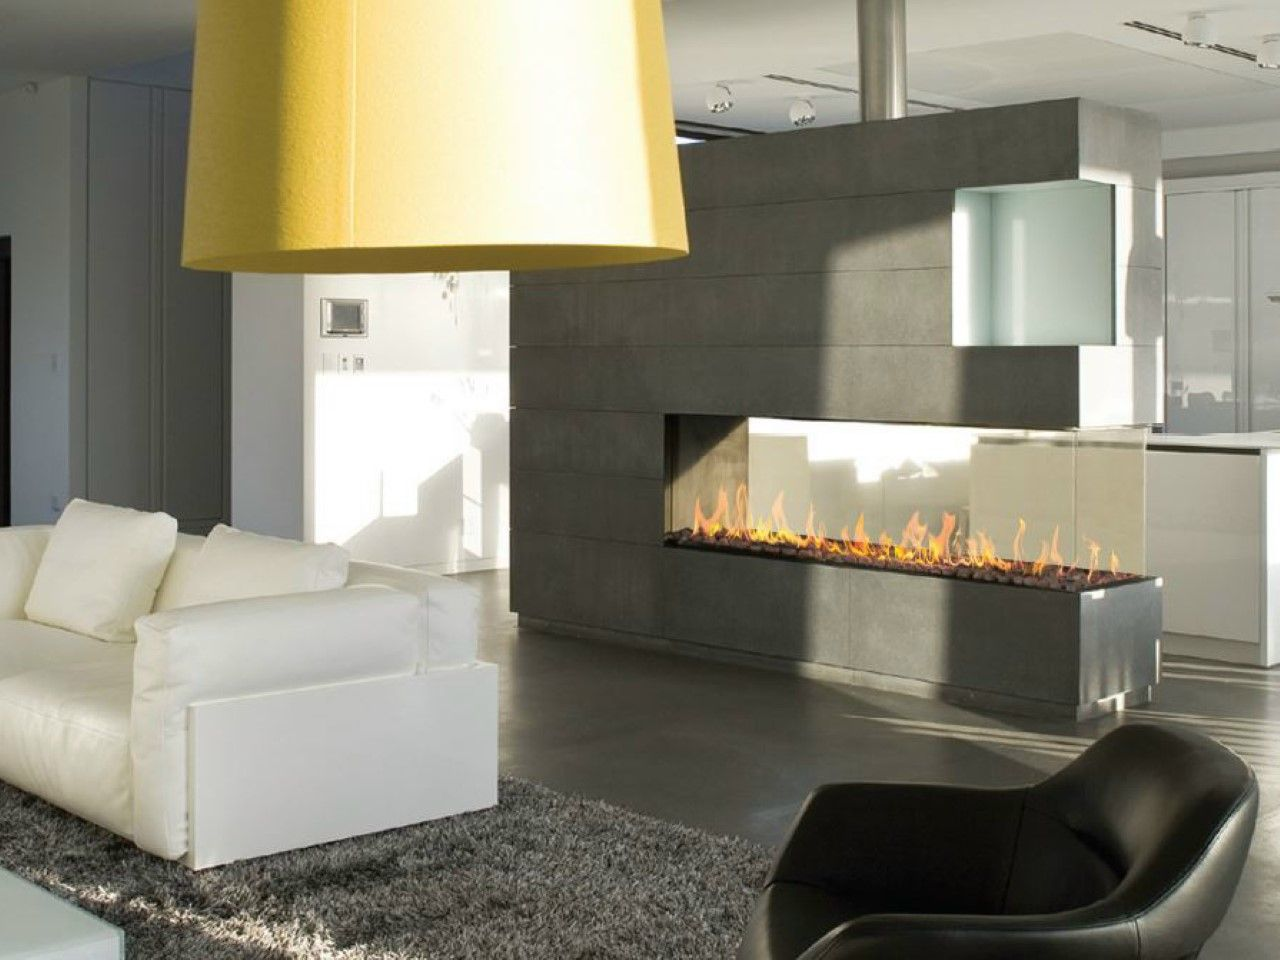 3 sided gas fireplace choice image home fixtures decoration ideas